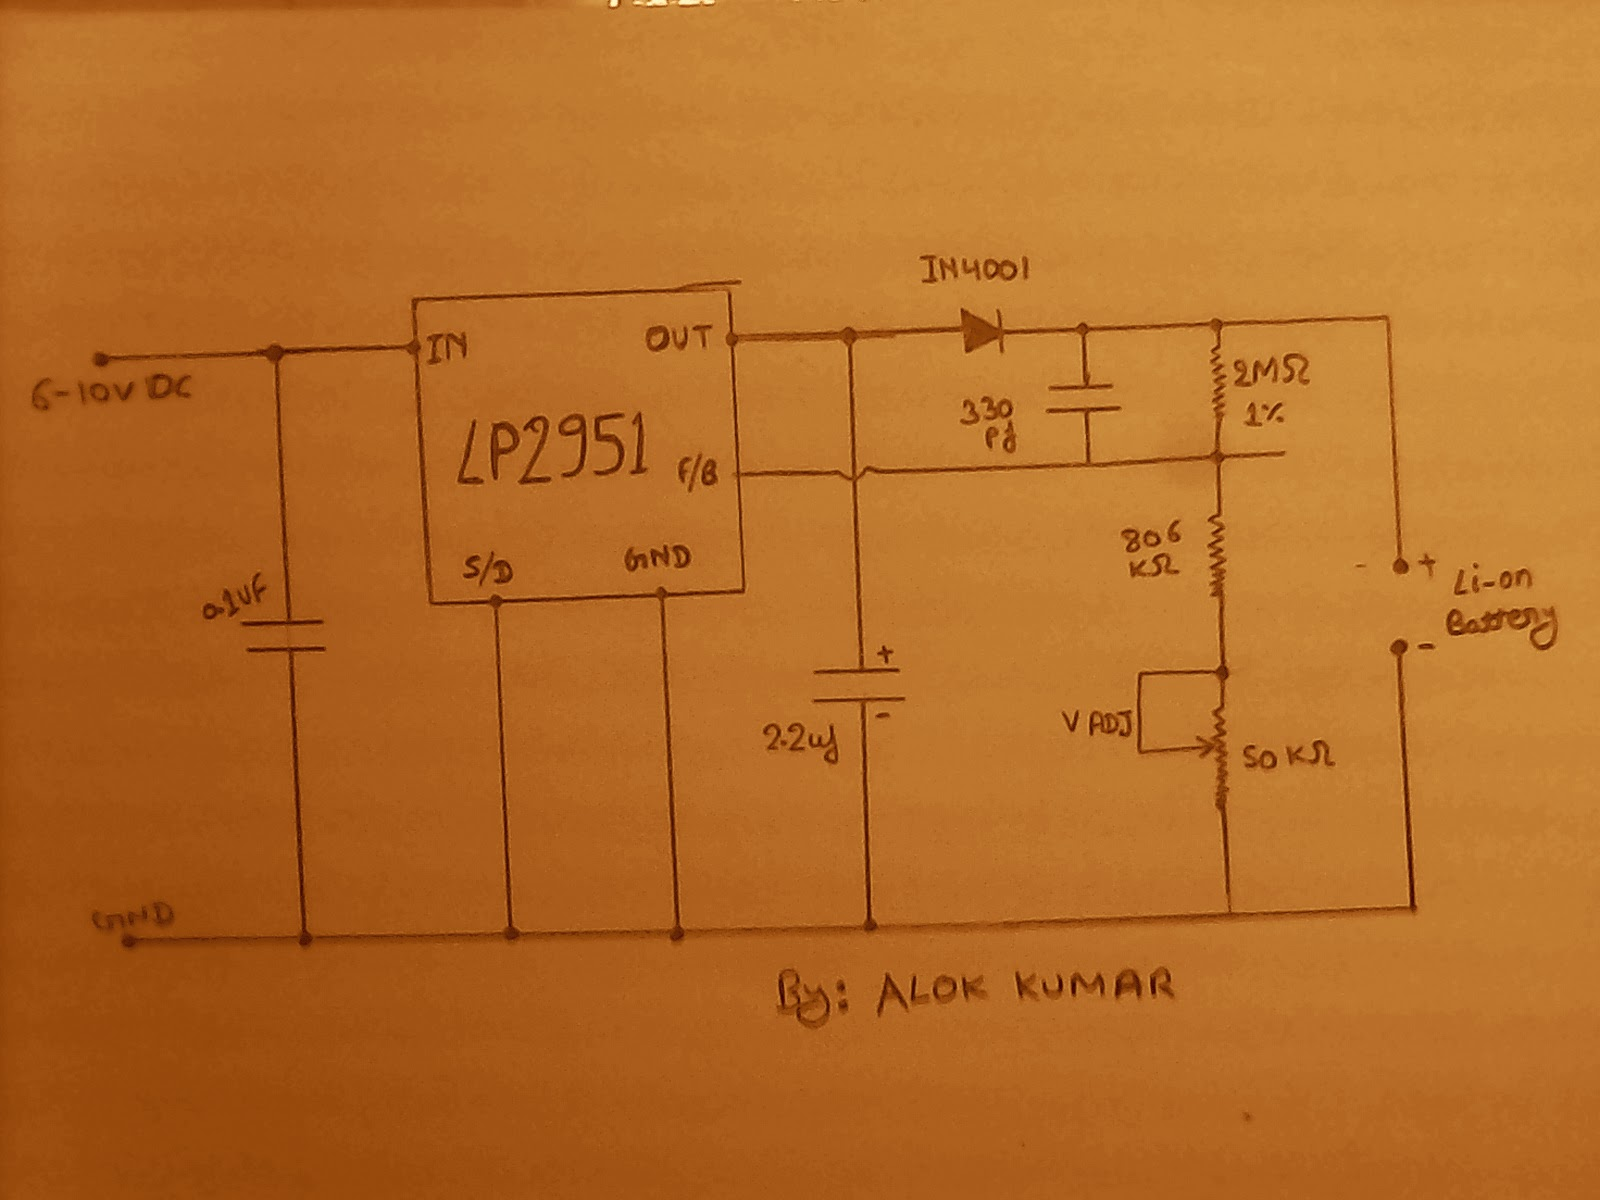 Liion Battery Charger Circuit Using Ic Lp2951 Schematic Circuits